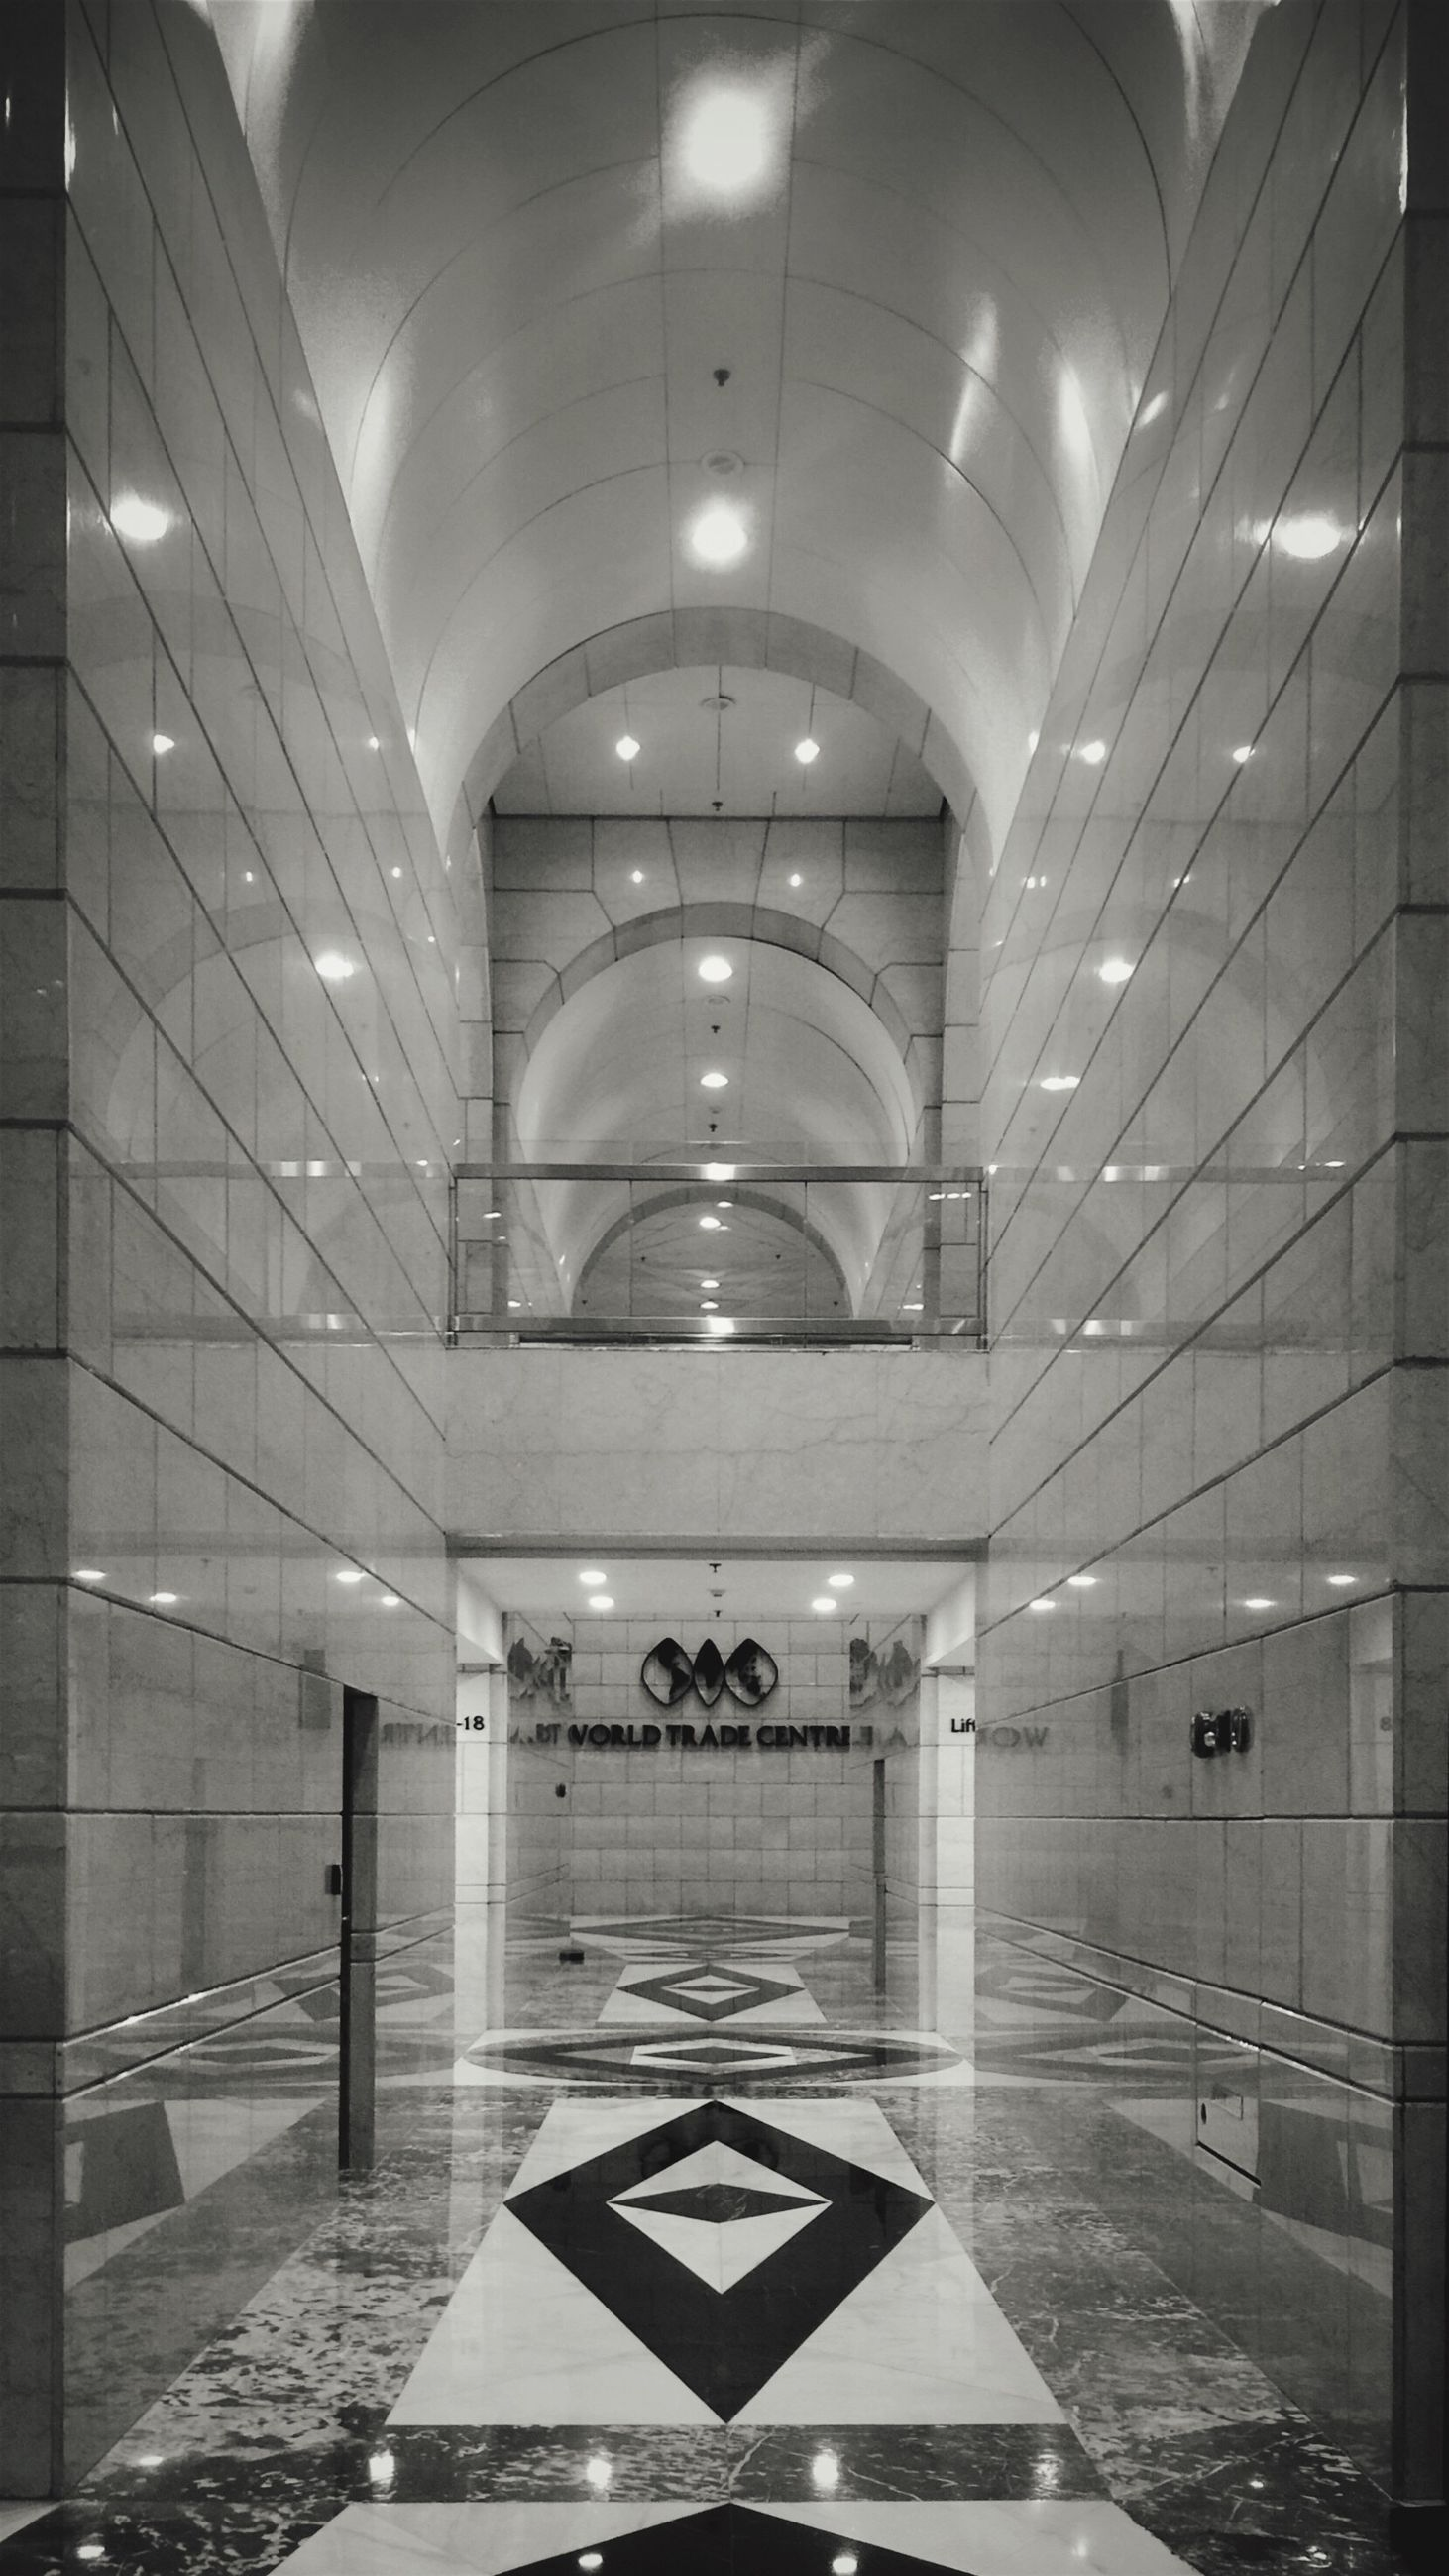 indoors, ceiling, illuminated, interior, architecture, corridor, arch, built structure, lighting equipment, empty, flooring, absence, the way forward, tiled floor, door, subway, wall - building feature, tunnel, diminishing perspective, tile